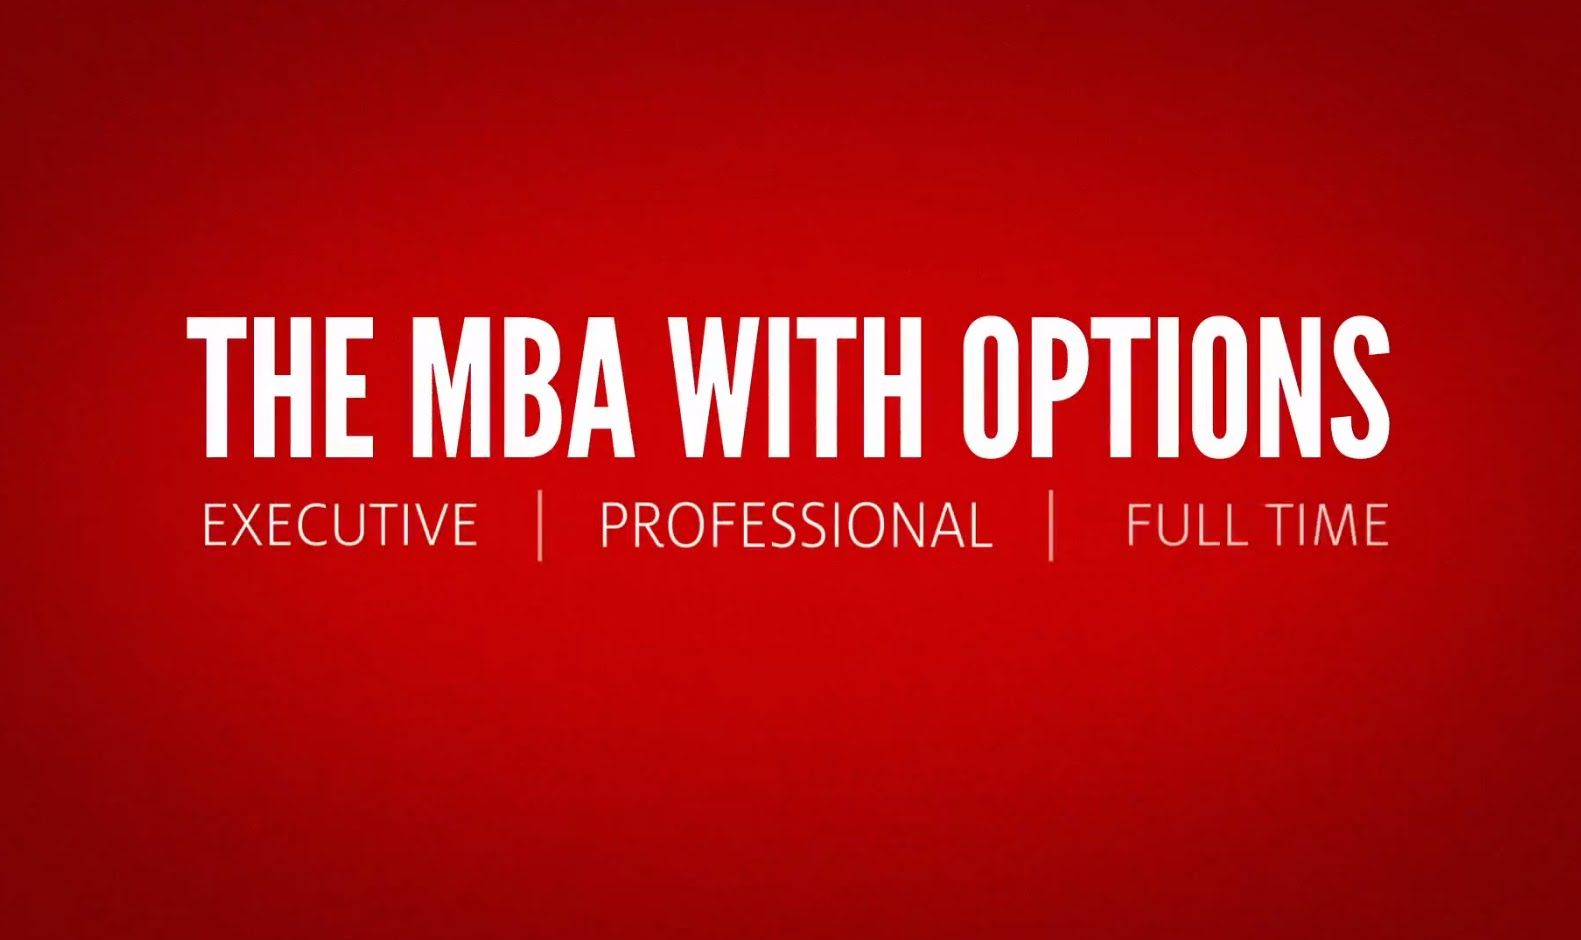 The Bauer MBA at University of Houston is truly the MBA